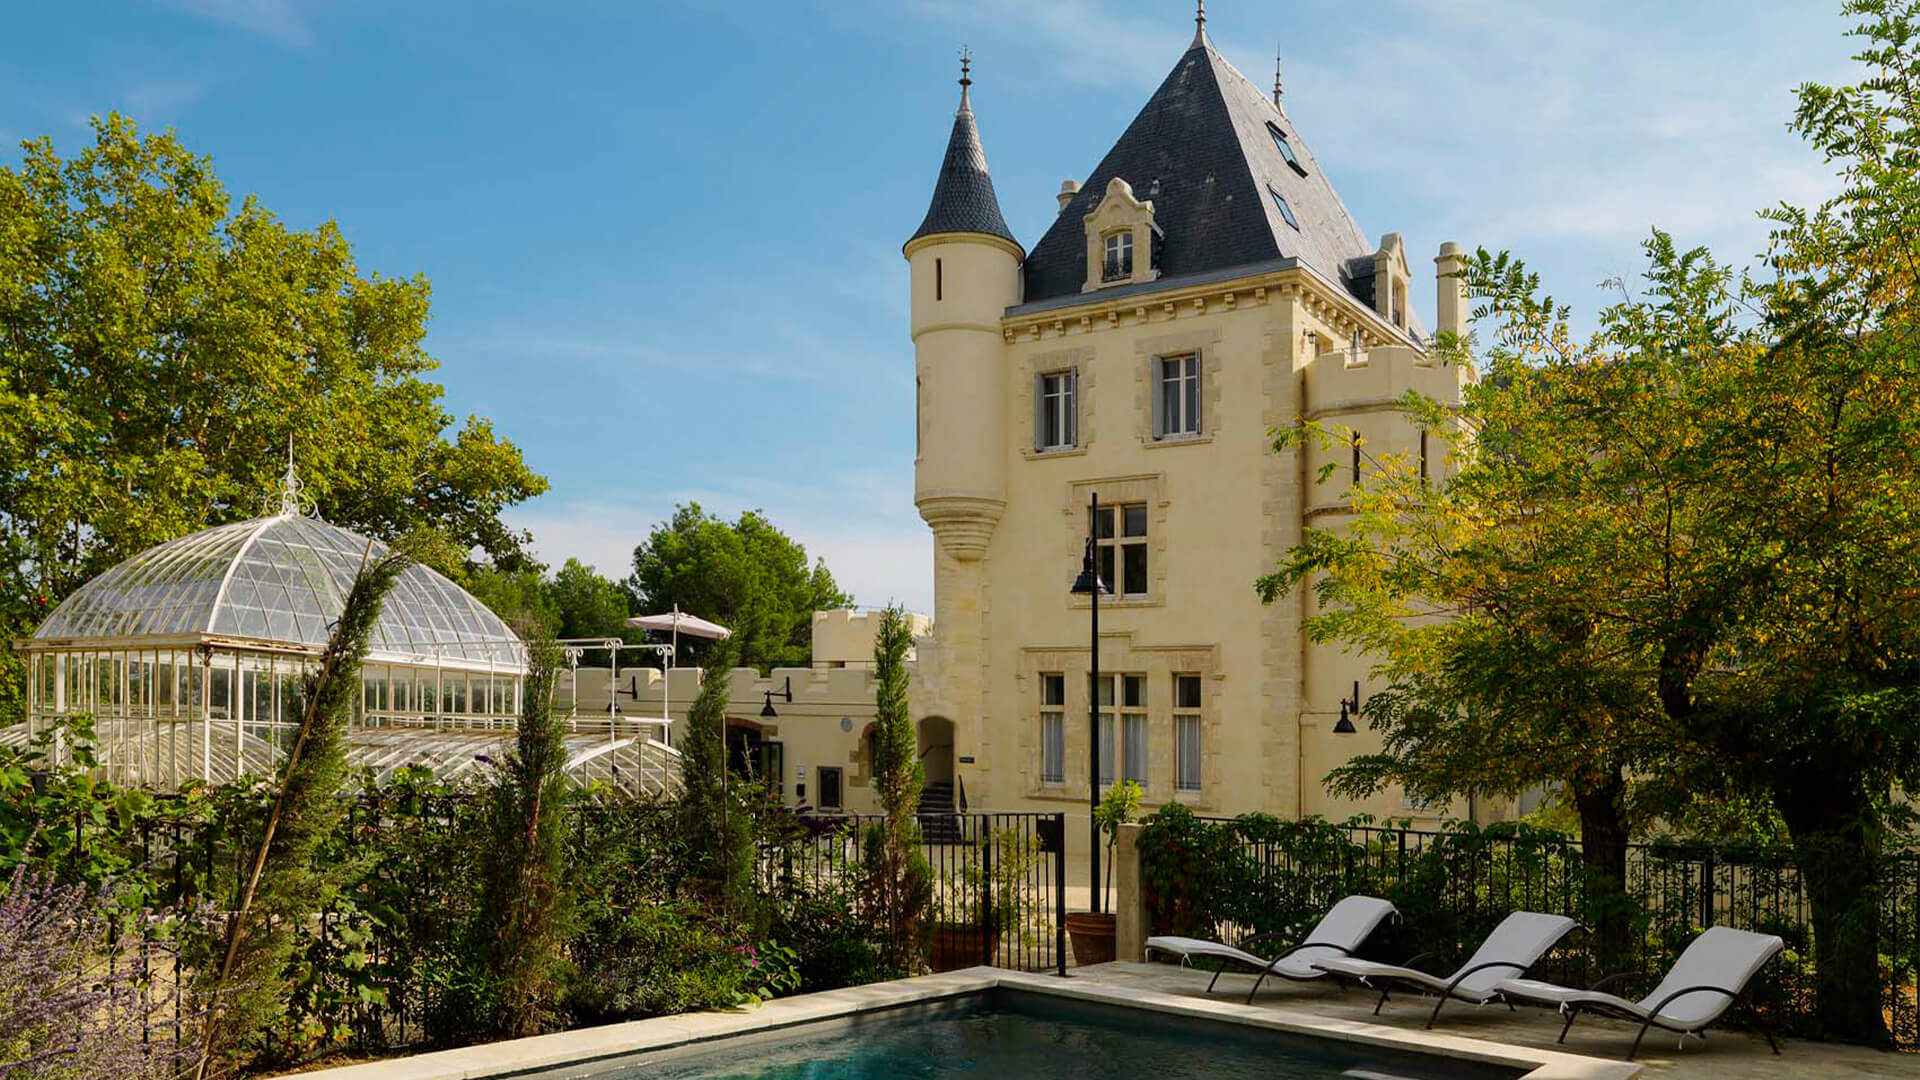 Chateau garden with swimming pool and orangerie